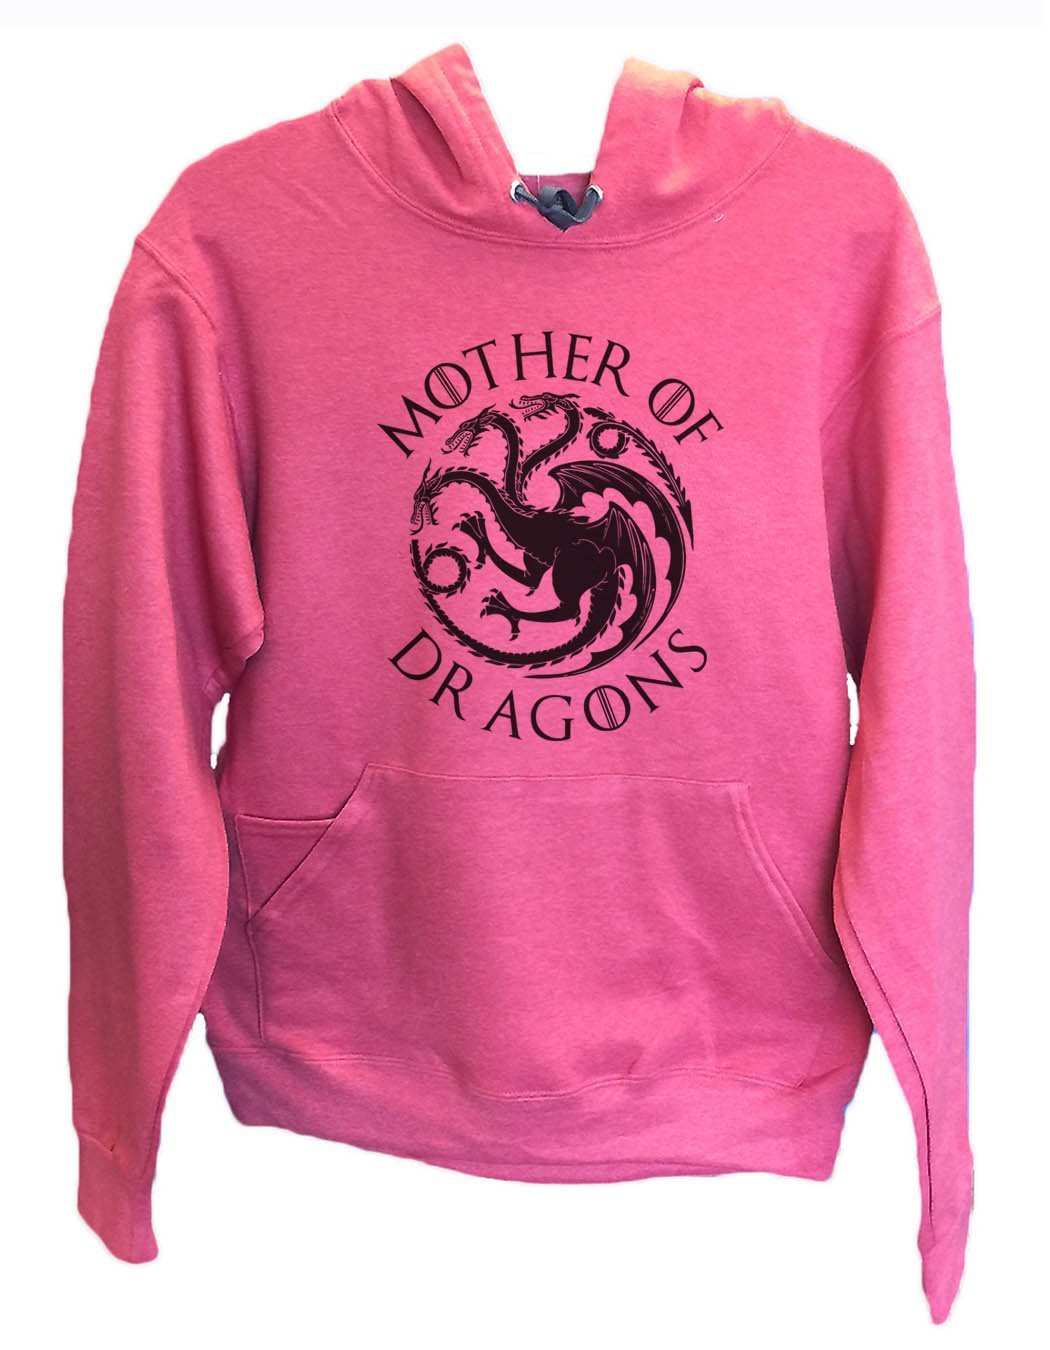 UNISEX HOODIE - Mother Of Dragons - FUNNY MENS AND WOMENS HOODED SWEATSHIRTS - BB15 Funny Shirt Small / Cranberry Red